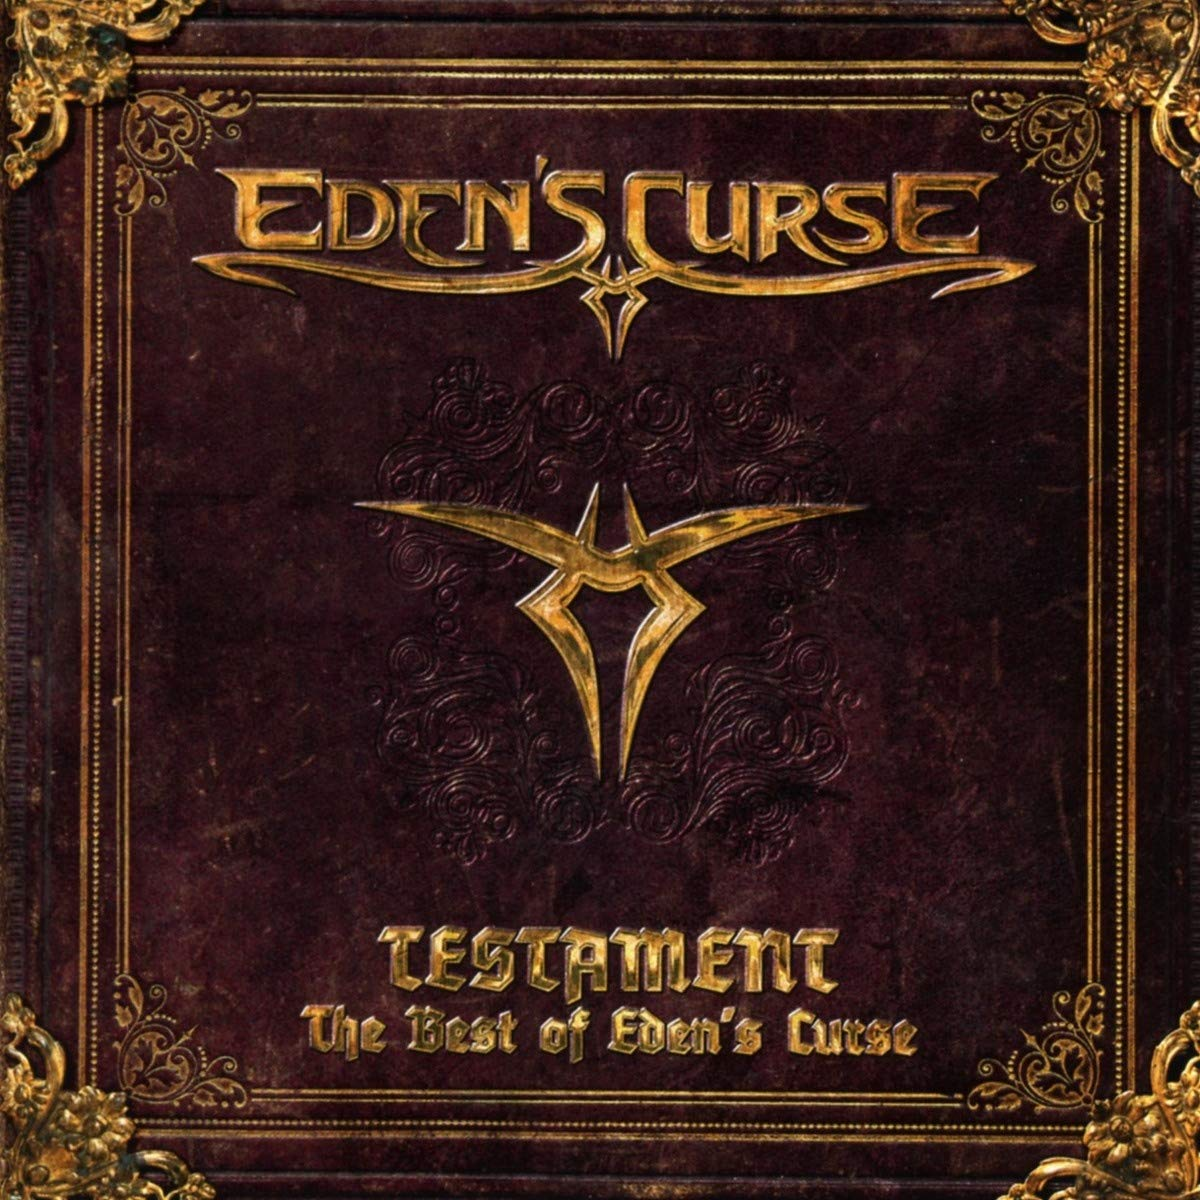 CD : Eden's Curse - Testament - The Best Of Eden's Curse (CD)